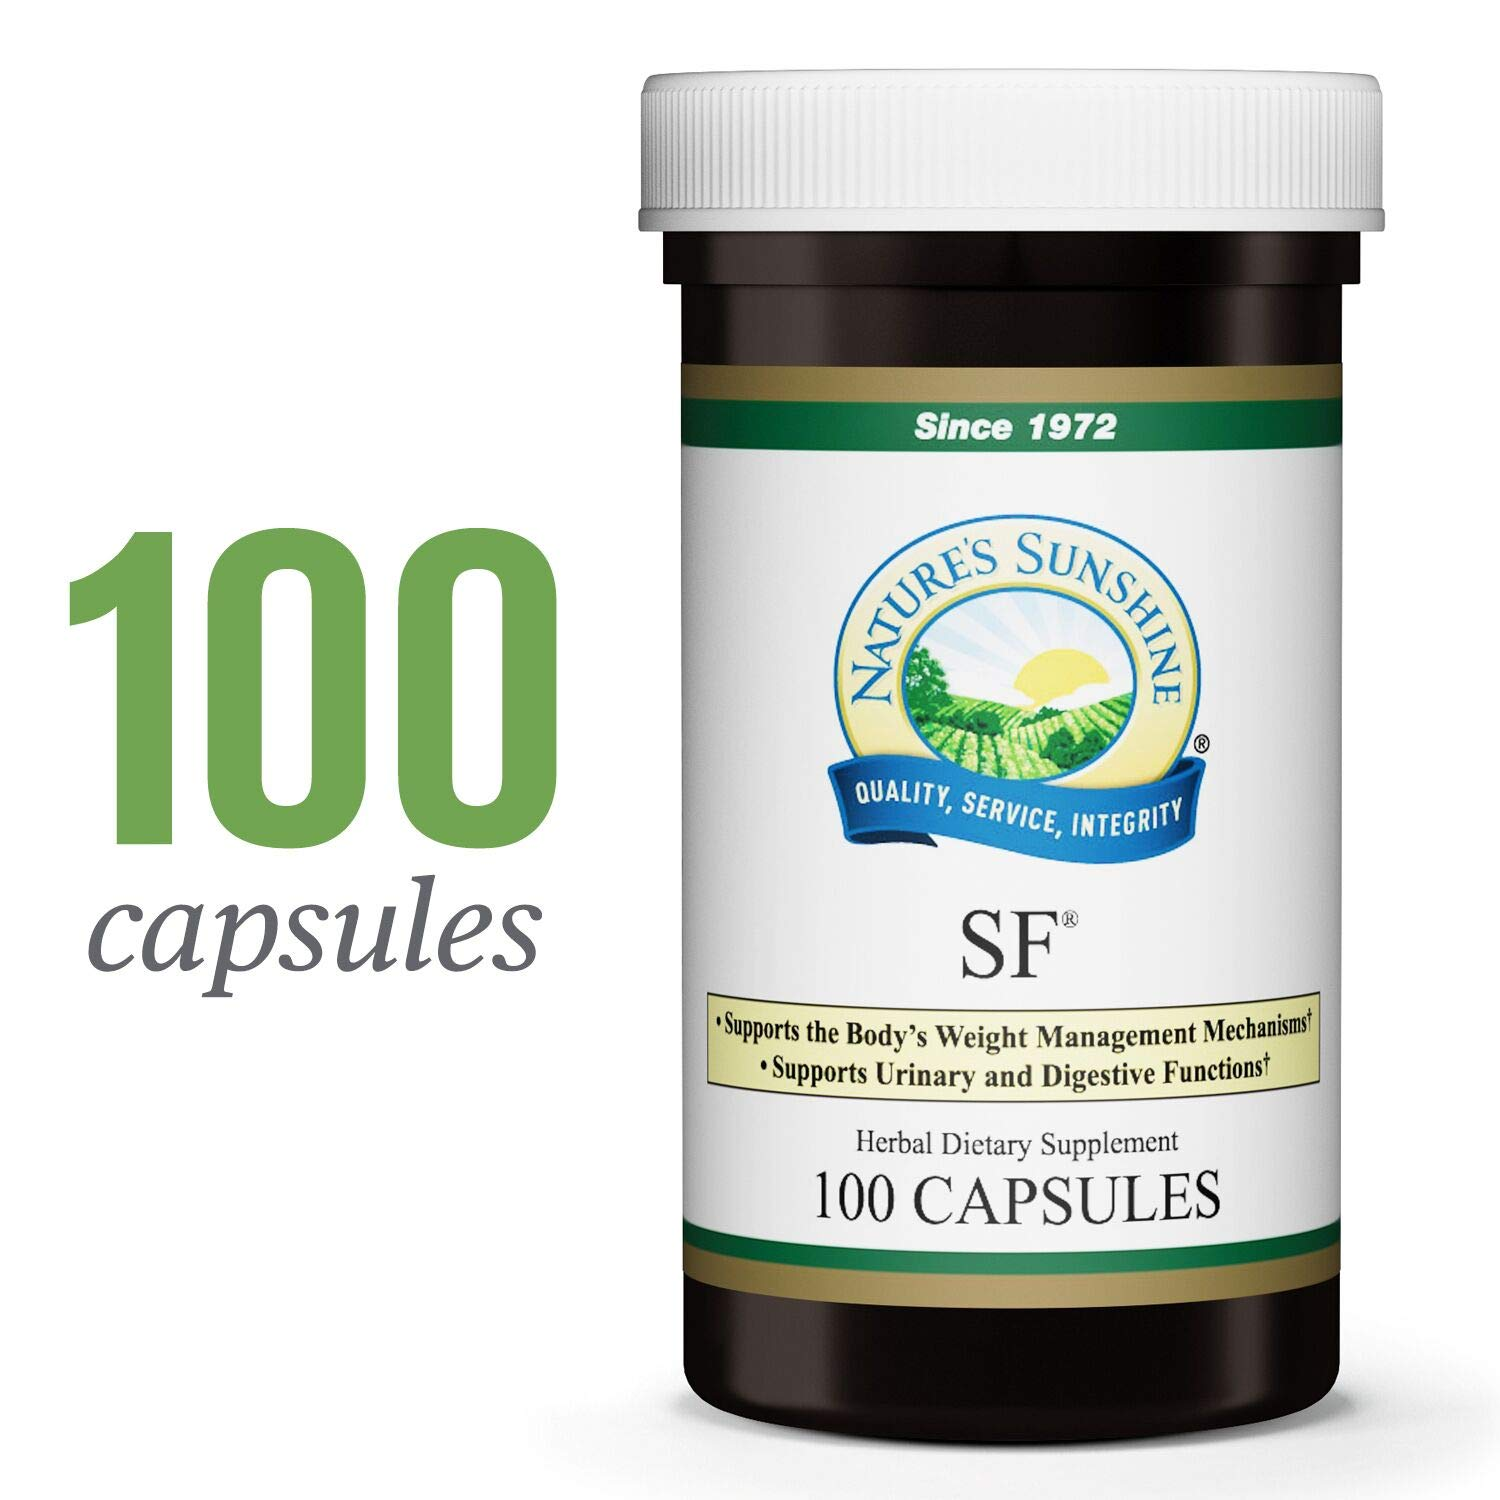 Nature's Sunshine SF, 100 Capsules | Supports Weight Management Efforts with Herbs for The Intestinal, Urinary, and Digestive Systems by Nature's Sunshine